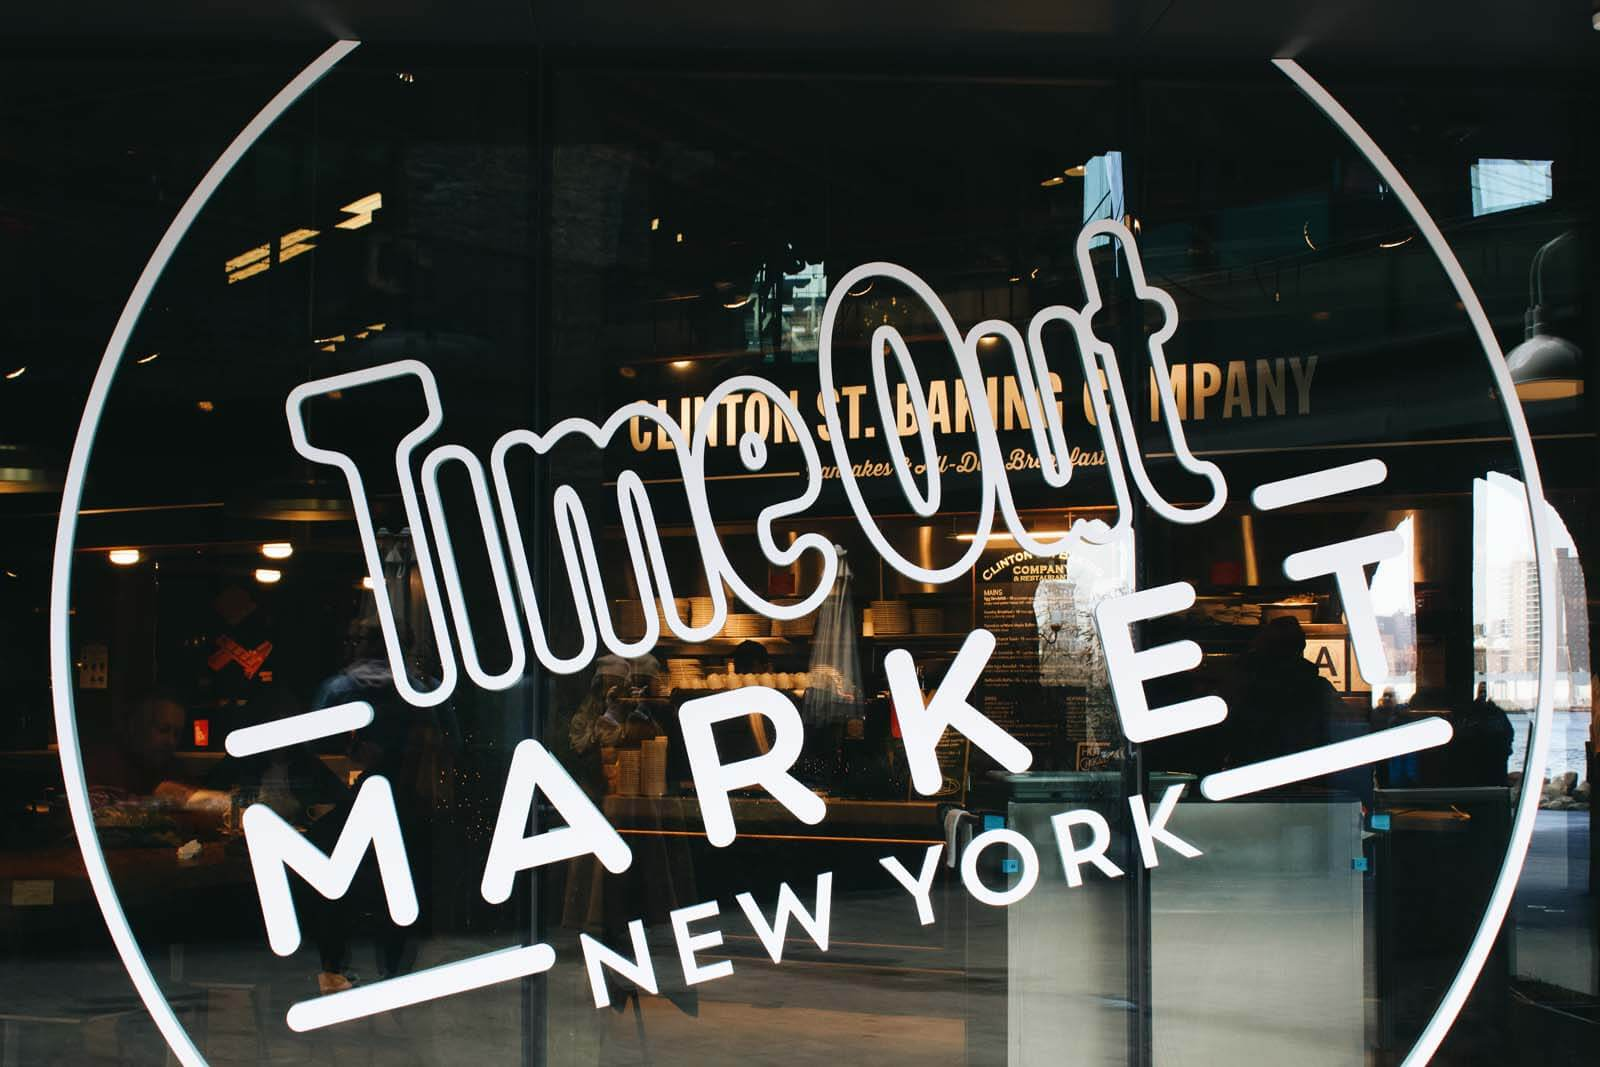 Timeout-Market-New-York-by-Katie-Hinkle